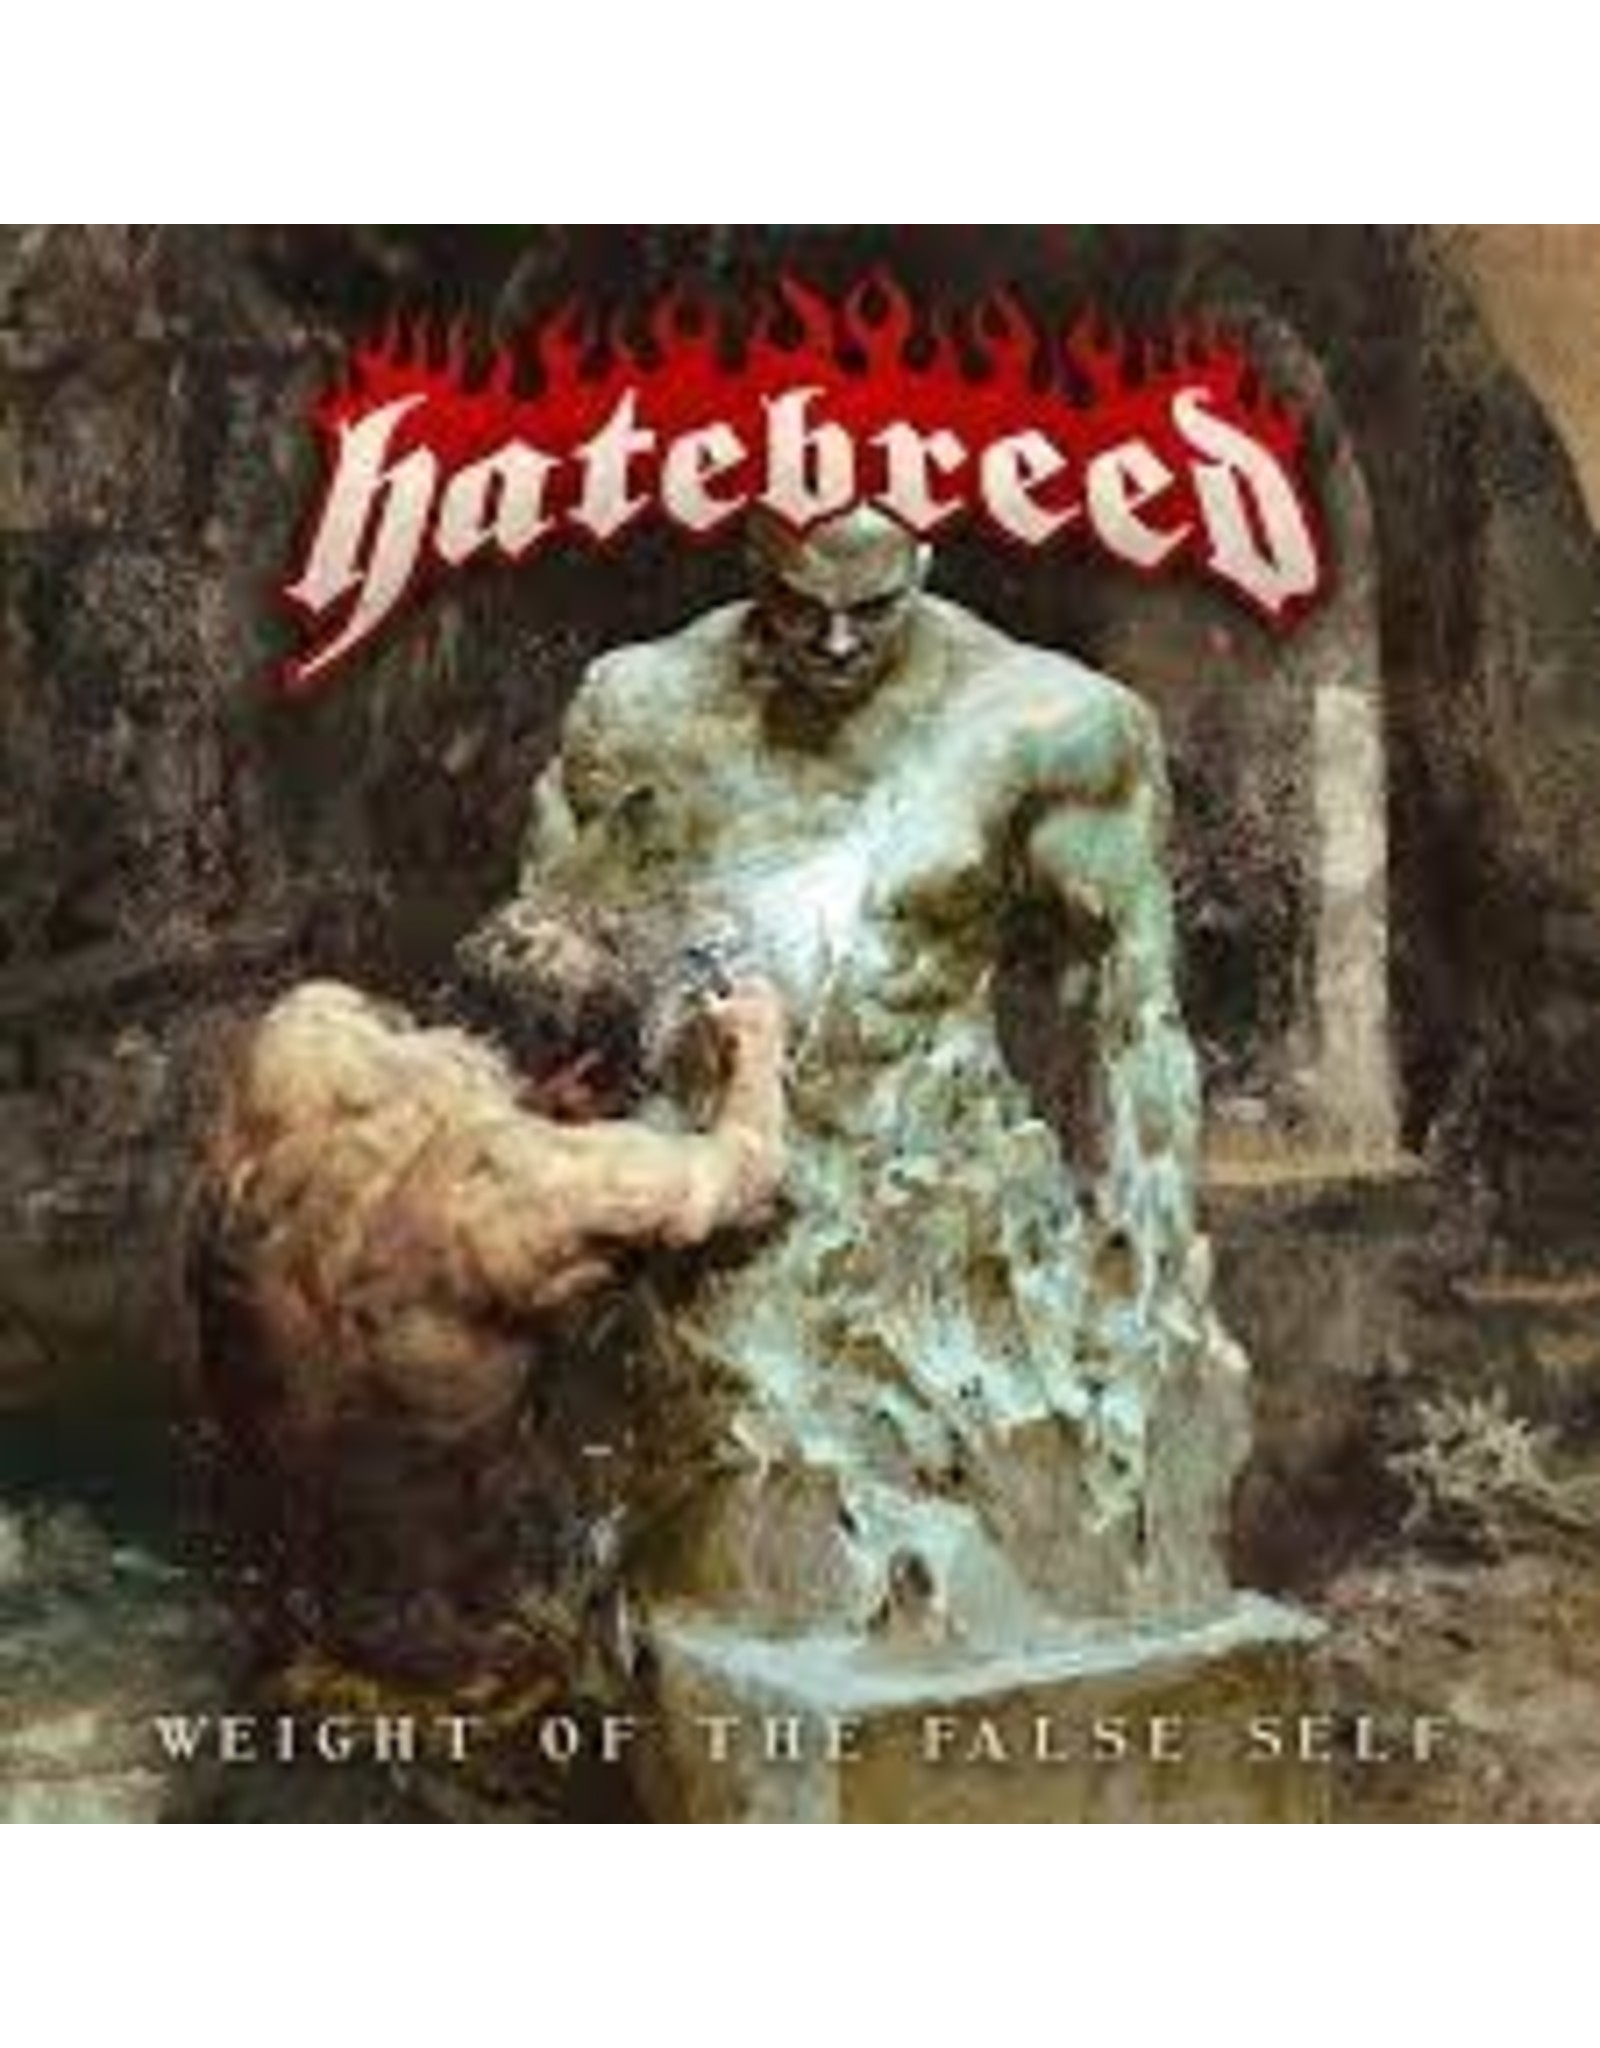 Hatebreed - Weight Of the False Self LP